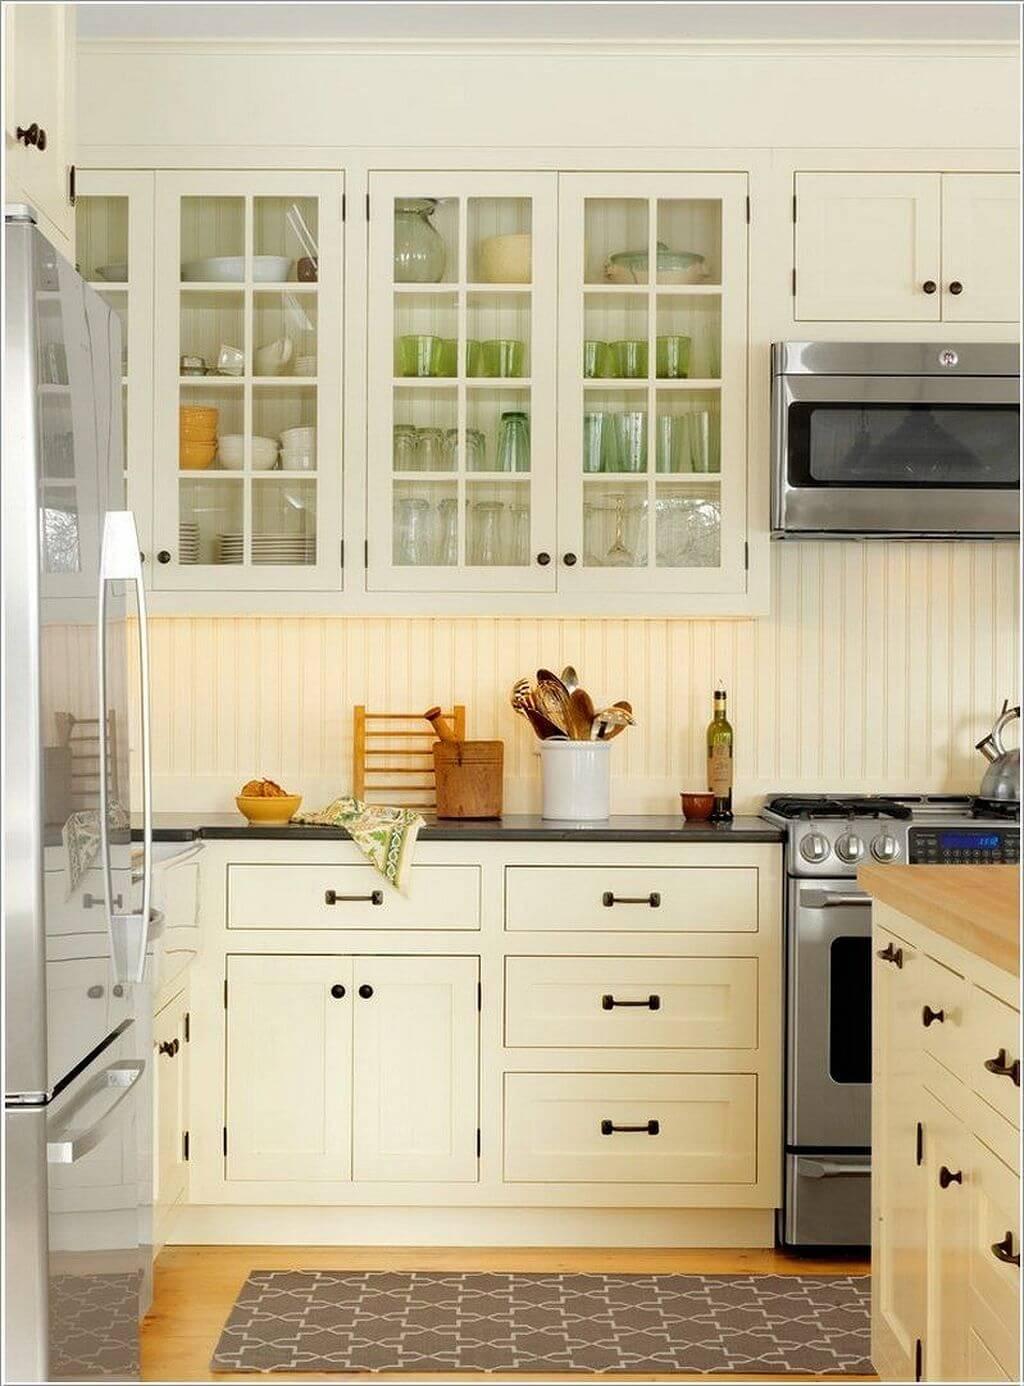 Open-Face White Paneled Kitchen Cabinets